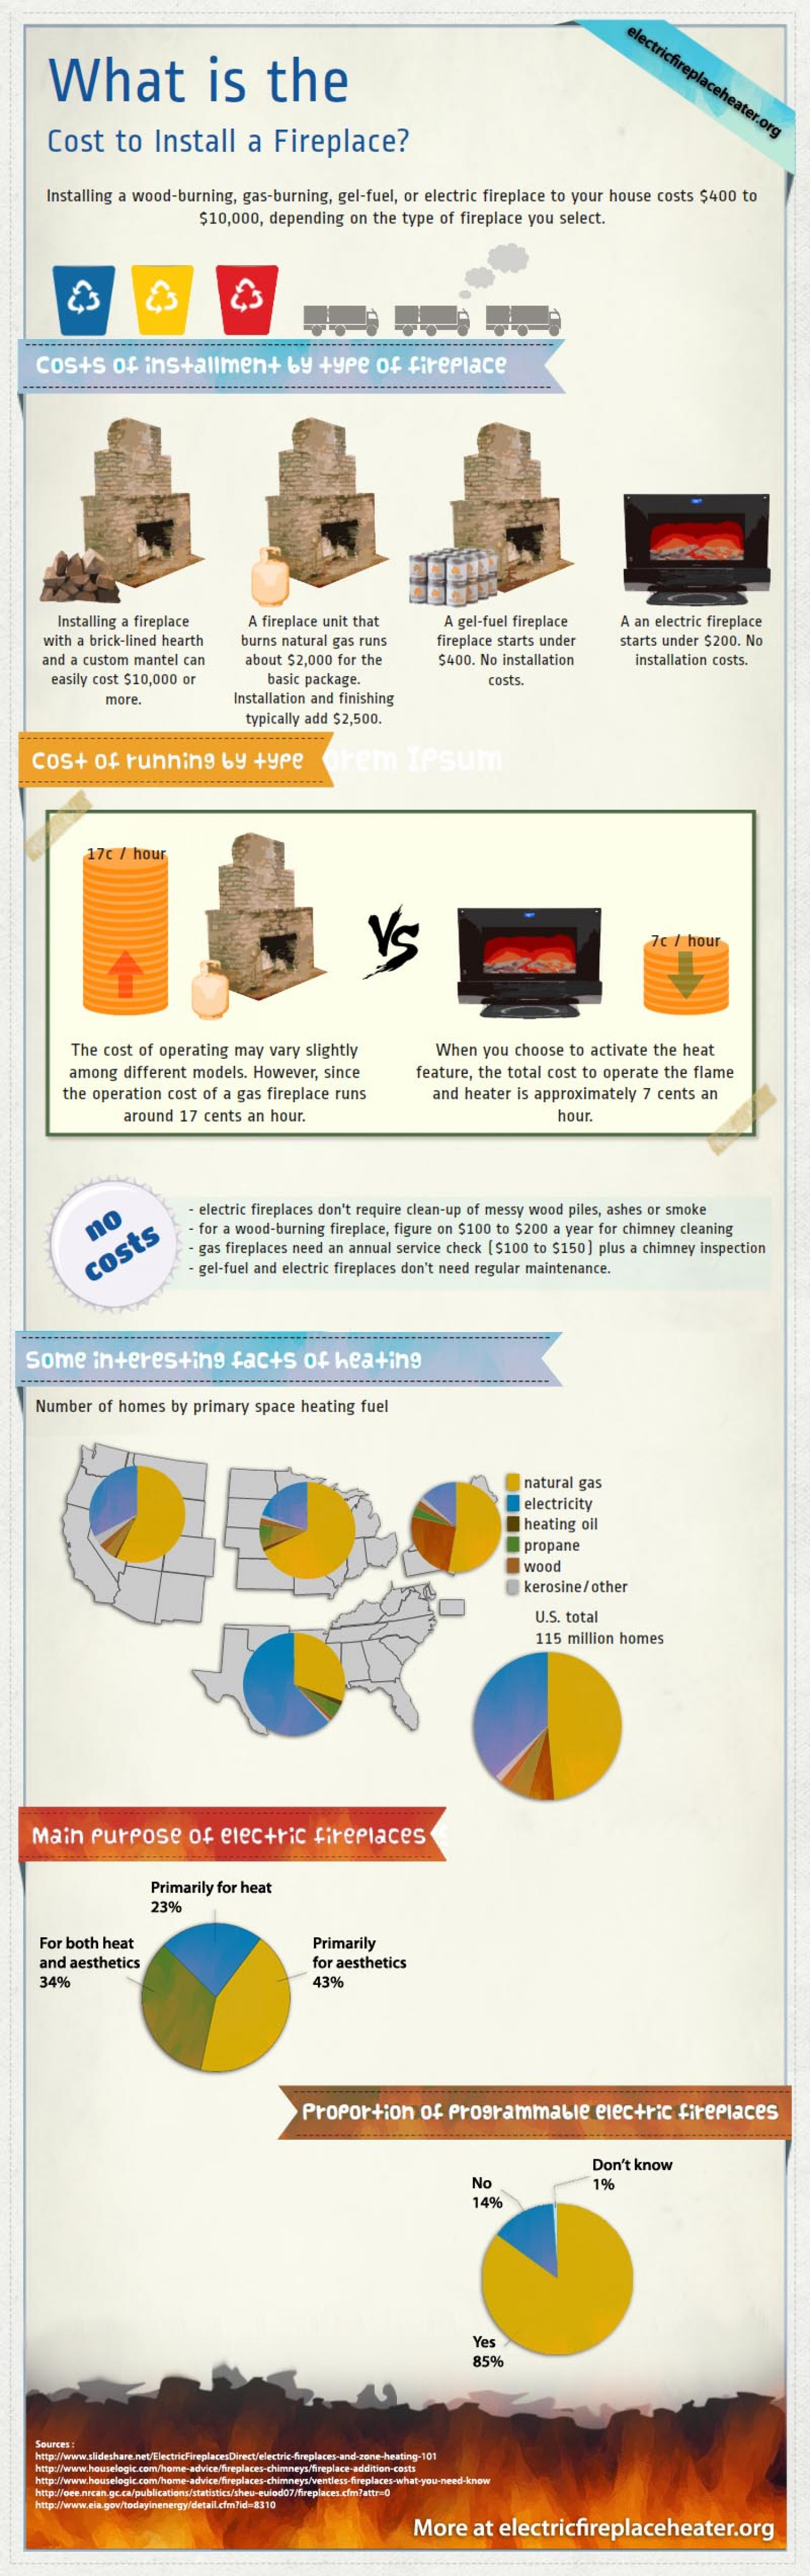 What is the cost to install a fireplace Infographic